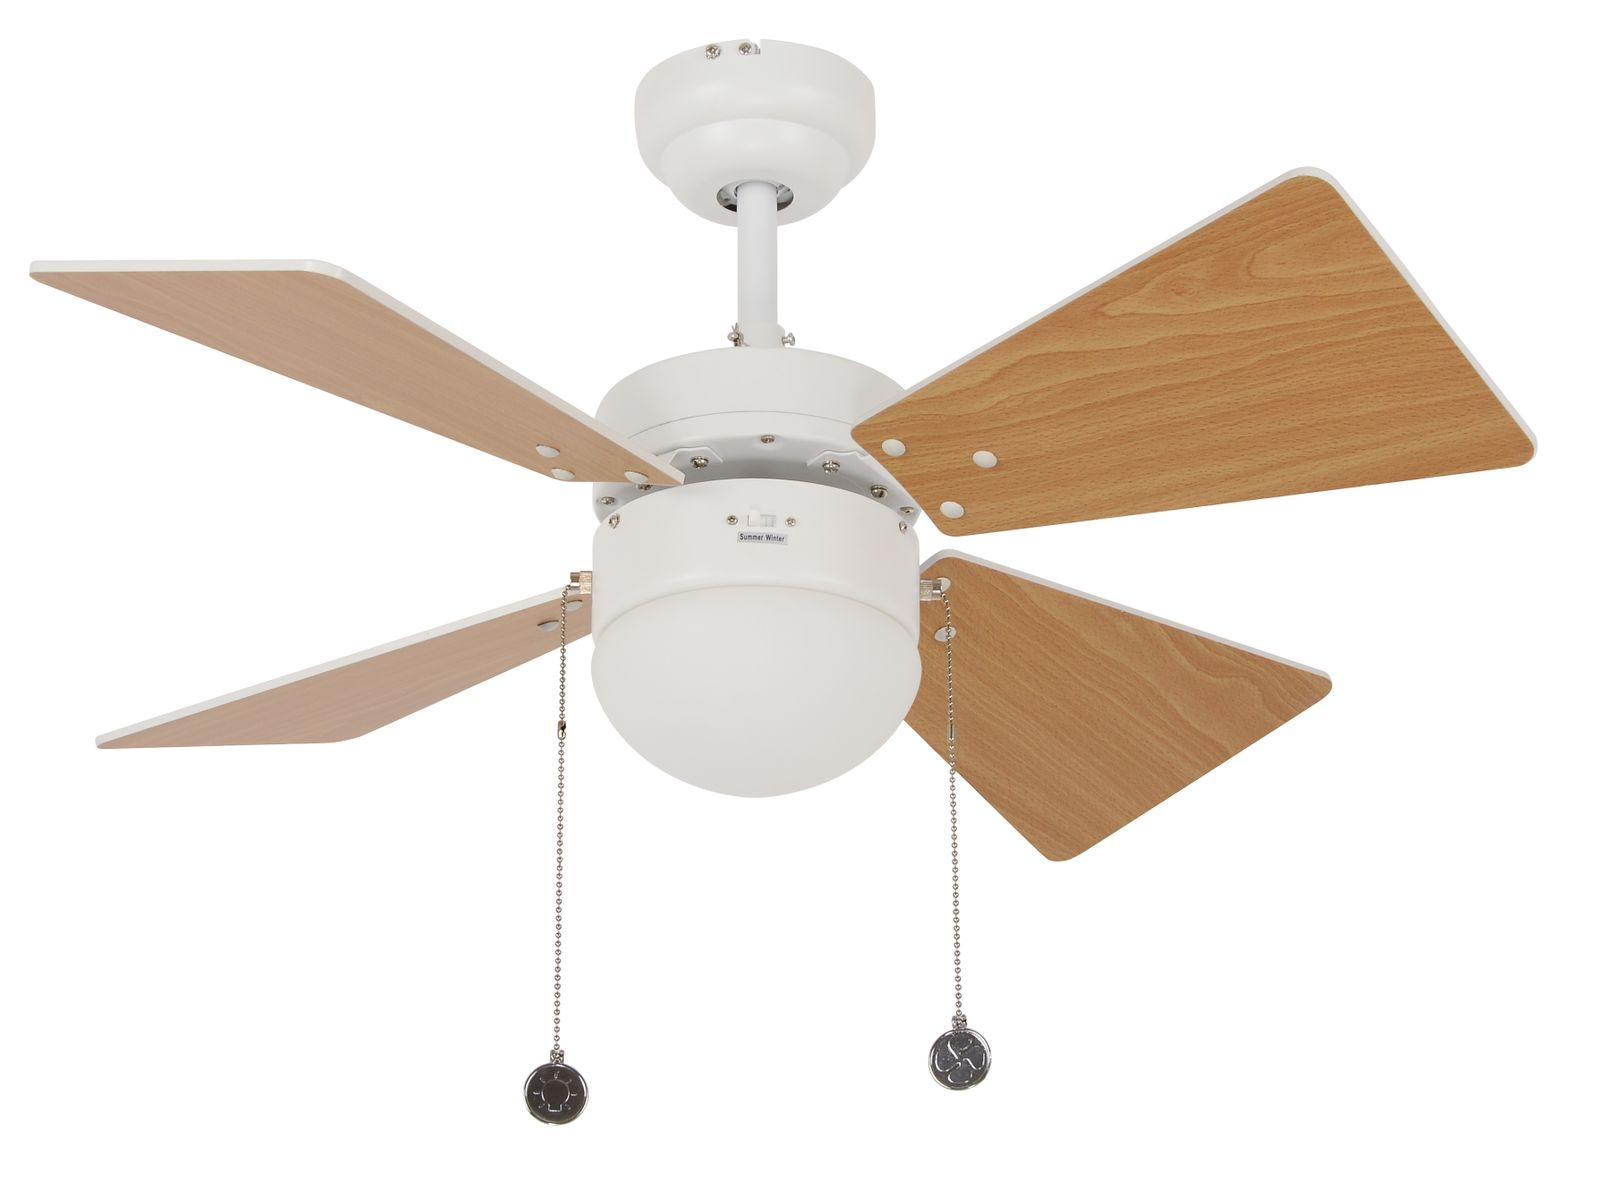 Beacon ceiling fan breezer white with light 81 cm 32 ceiling fans beacon ceiling fan breezer white with light 81 cm 32quot aloadofball Gallery